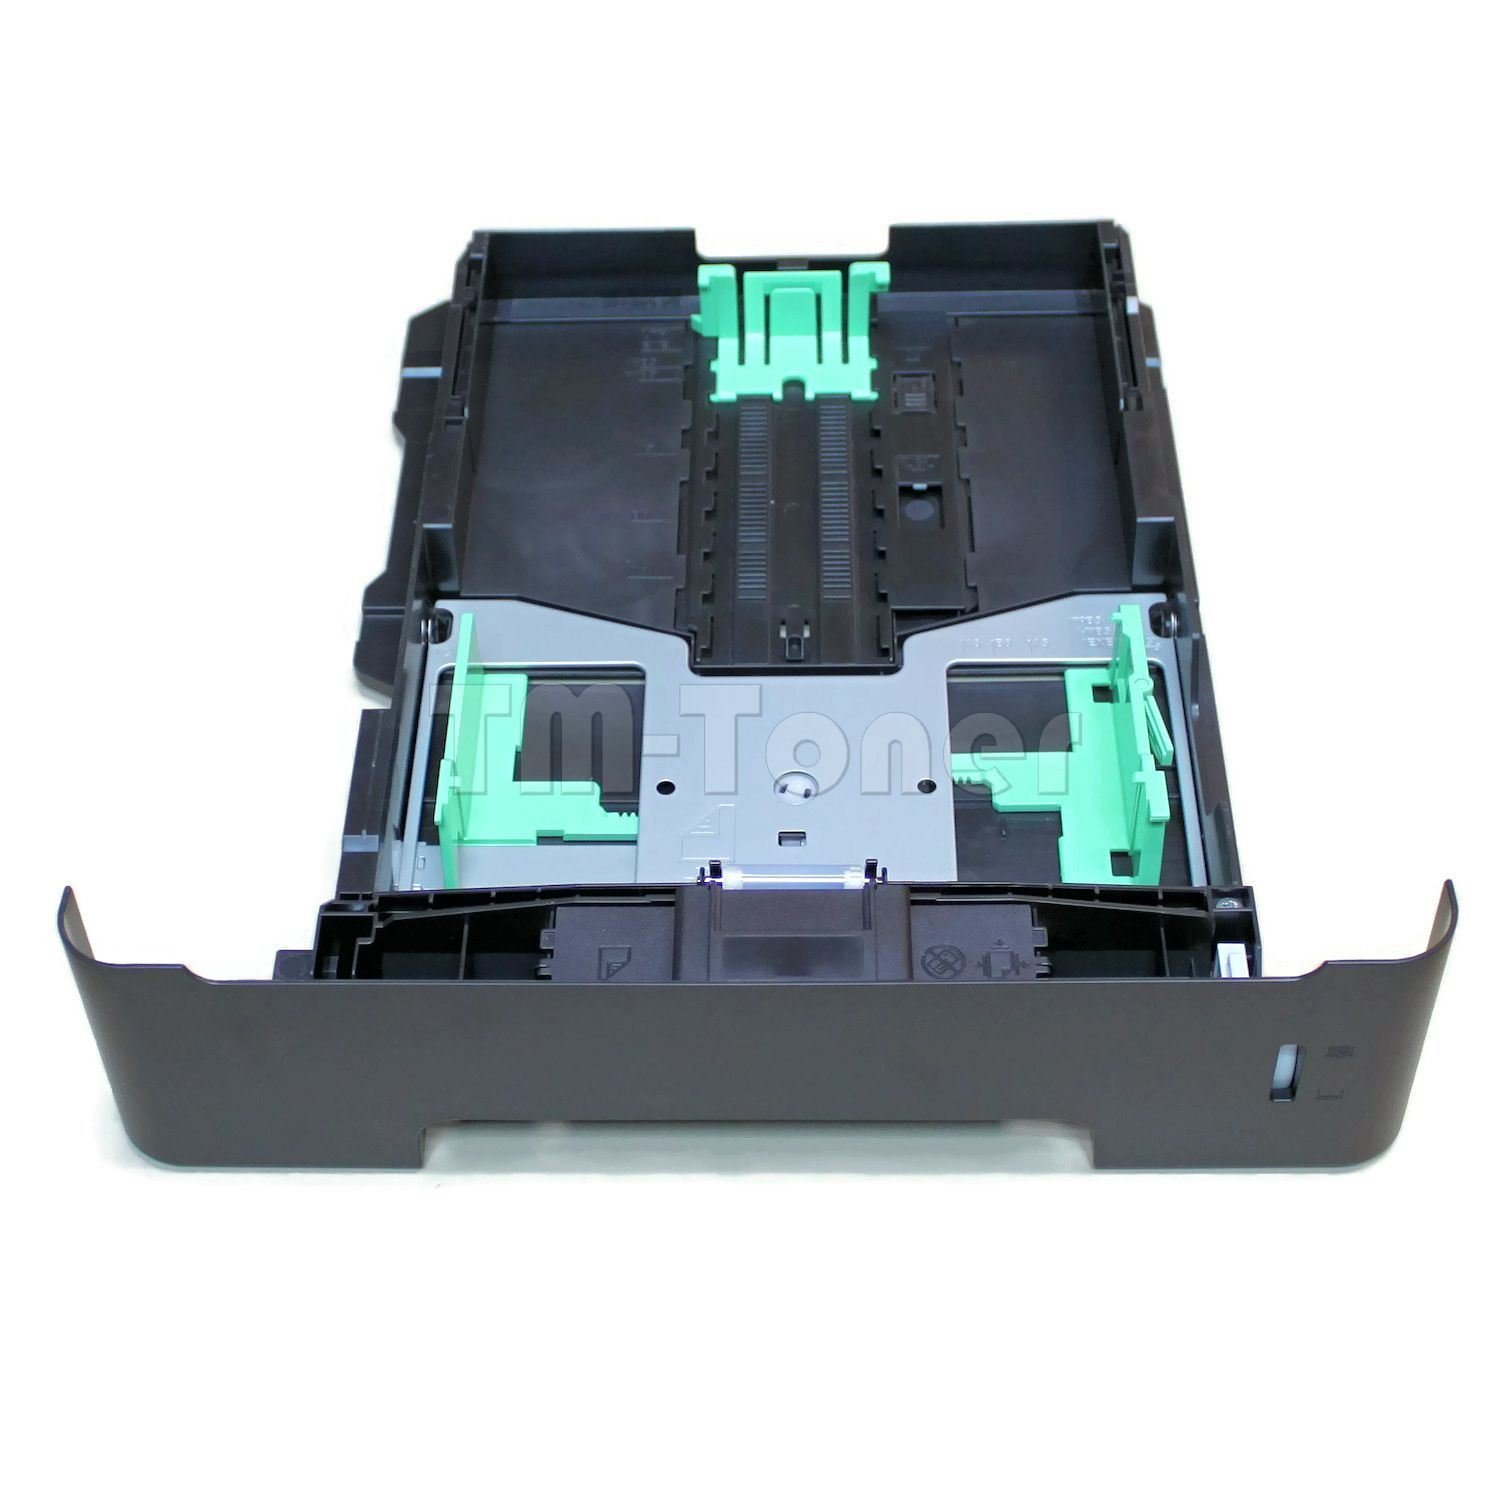 TM-toner © LY5724001 Replacement Paper Tray (250-sheets) for Brother DCP-8110DN, DCP-8150DN, DCP-8155DN, HL-5440D, HL-5450DN, HL-5470DW, HL-5470DWT, MFC-8510DN, MFC-8710DW, MFC-8910DW by Brother